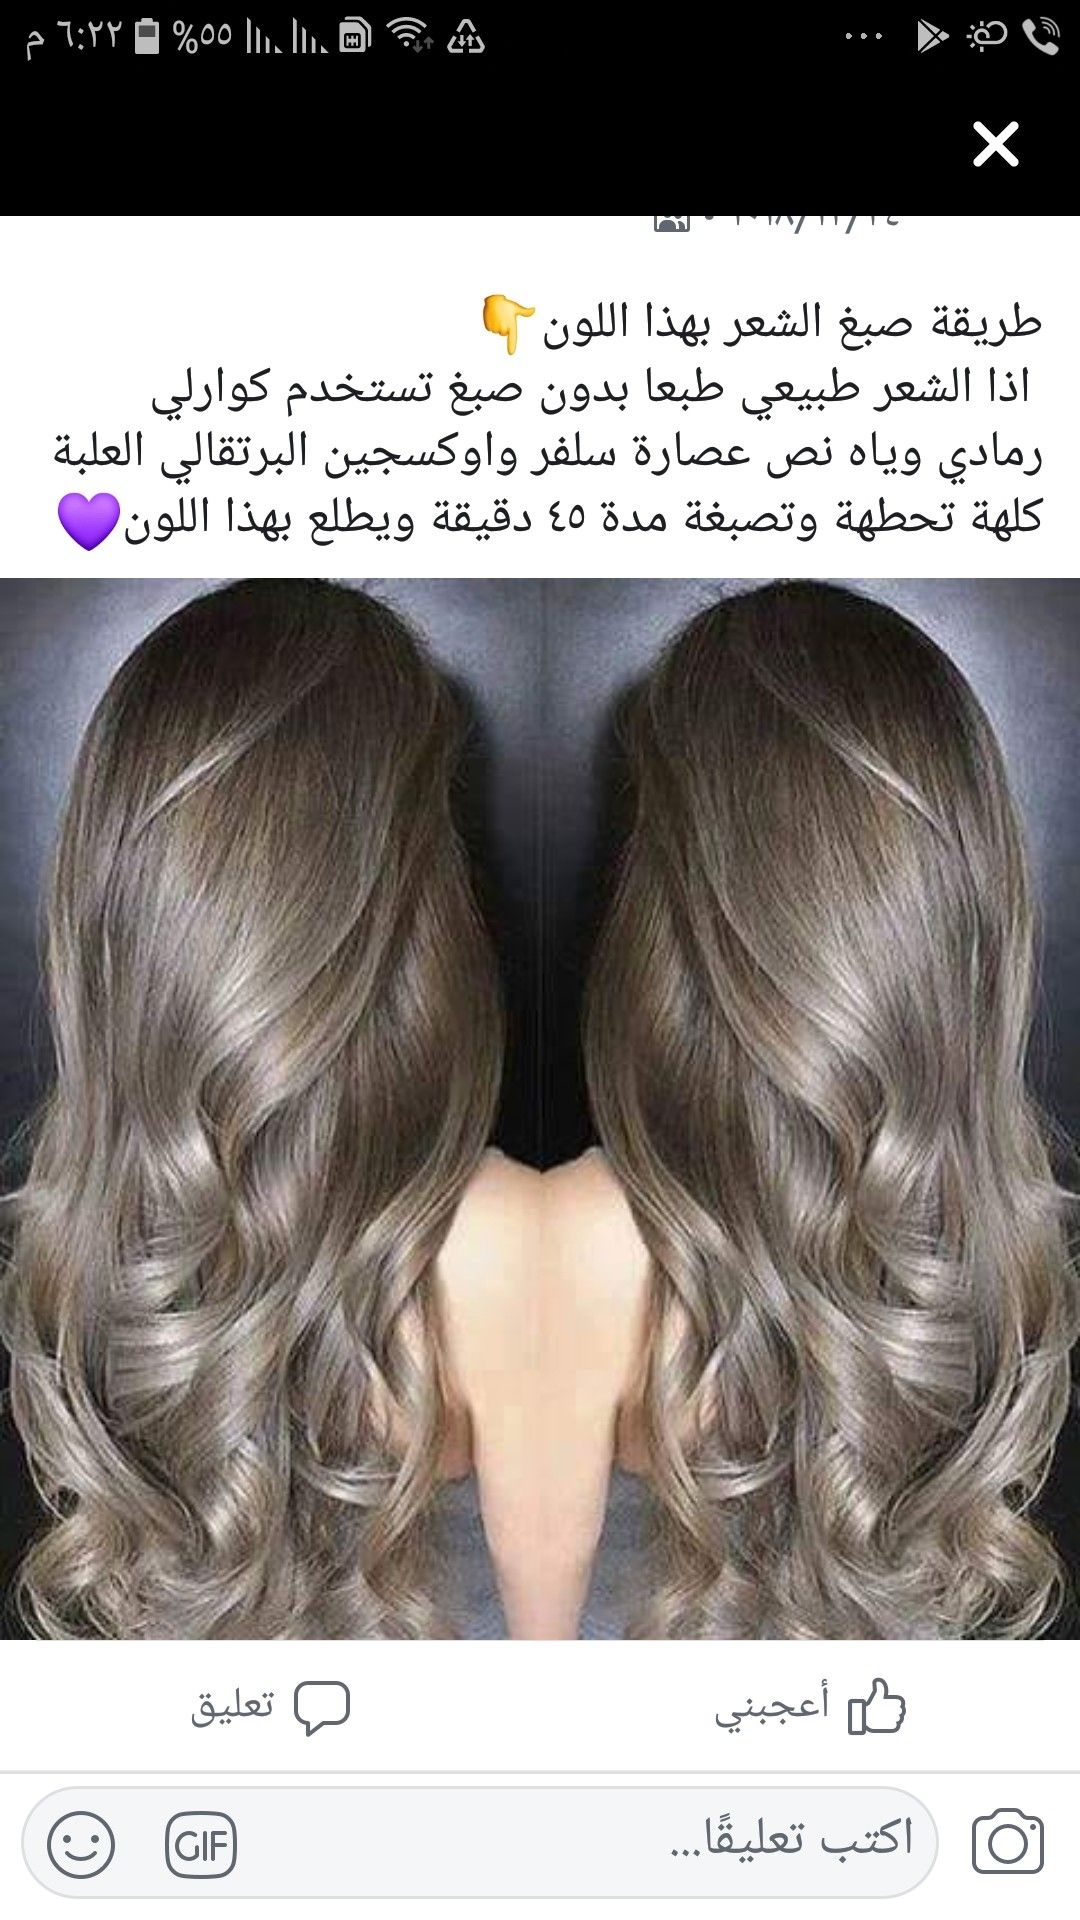 Pin By Dody Dody On روشنة Hair Care Long Hair Styles Hair Care Recipes